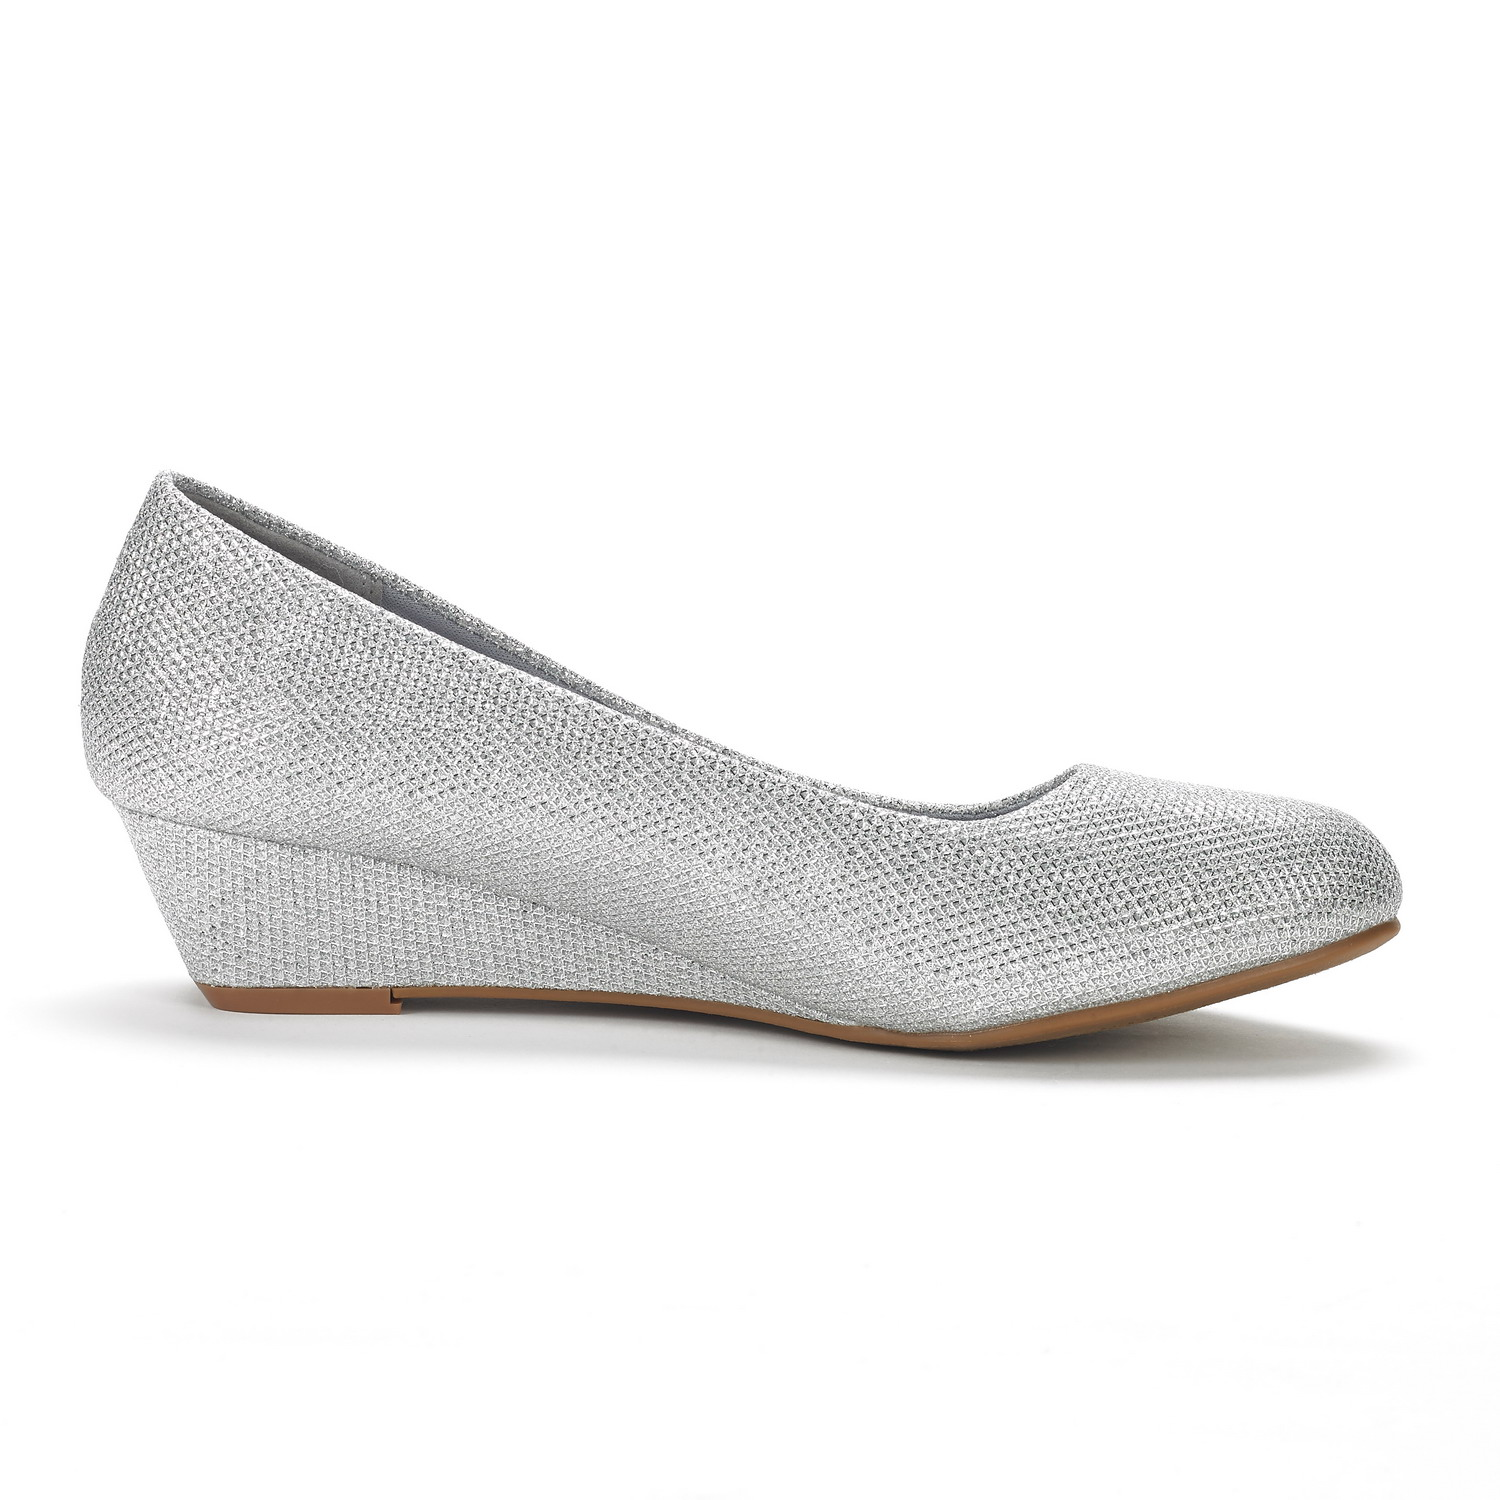 DREAM-PAIRS-Women-039-s-Mid-Wedge-Heel-Shoes-Slip-On-Comfort-Dress-Shoes-Suede-PU thumbnail 25